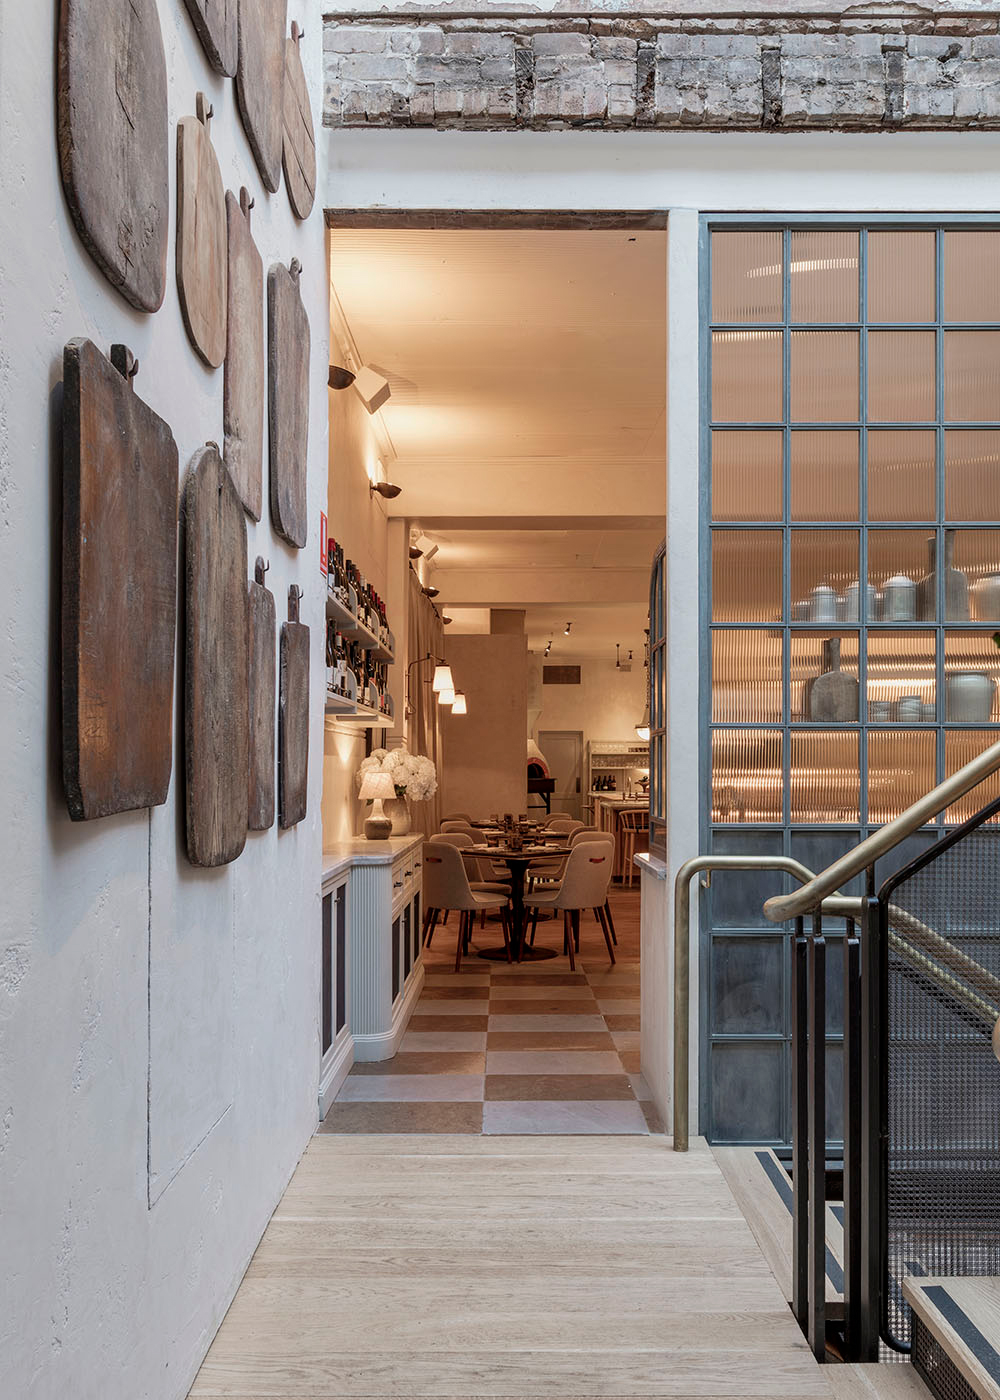 Fred's Restaurant by ACME & CO | Yellowtrace